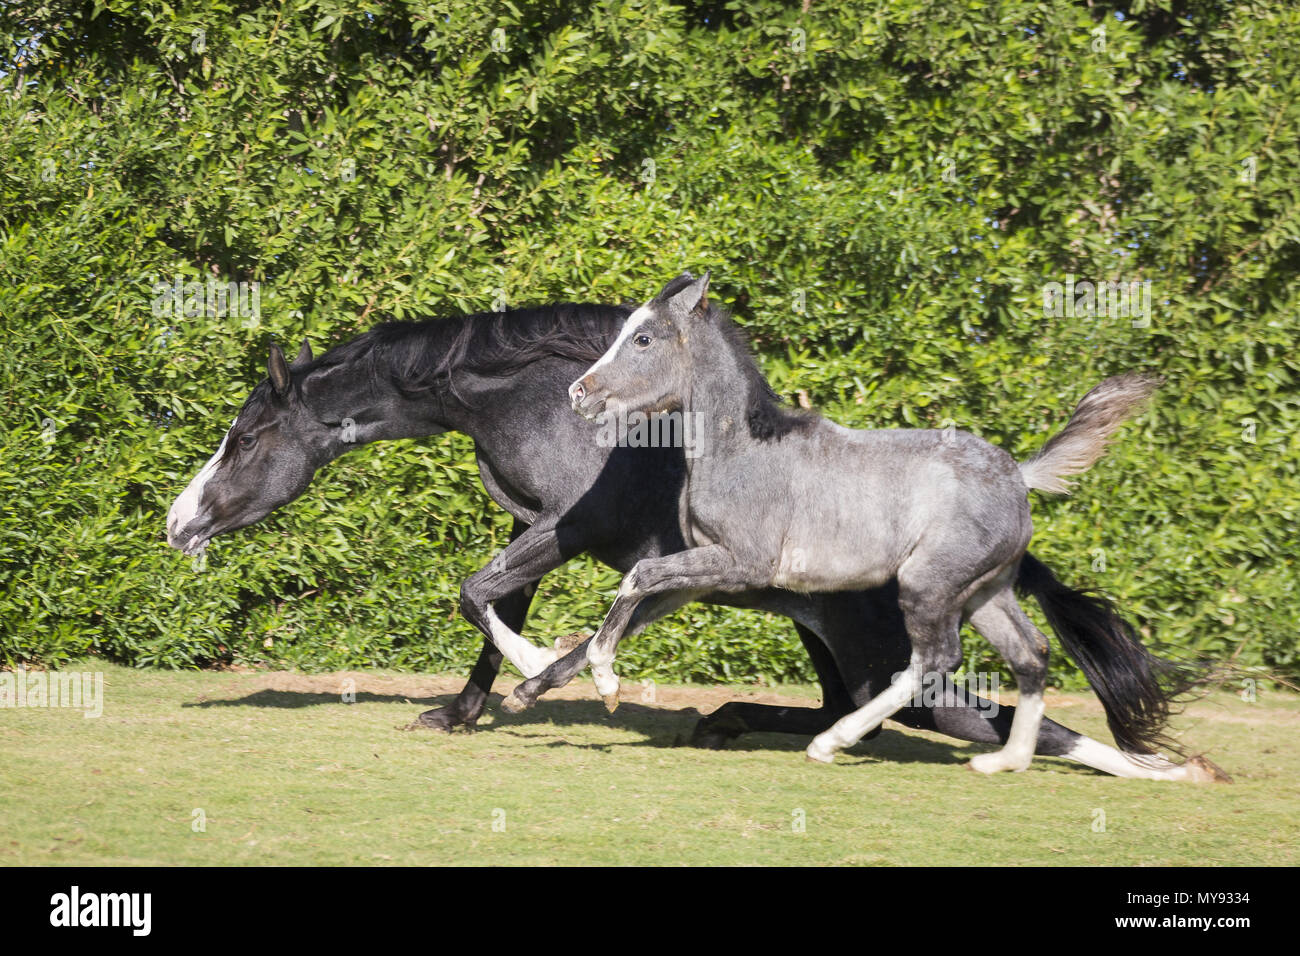 Barb Horse. Mare with filly-foal galopping on a lawn. The mare is slipping. Egypt - Stock Image